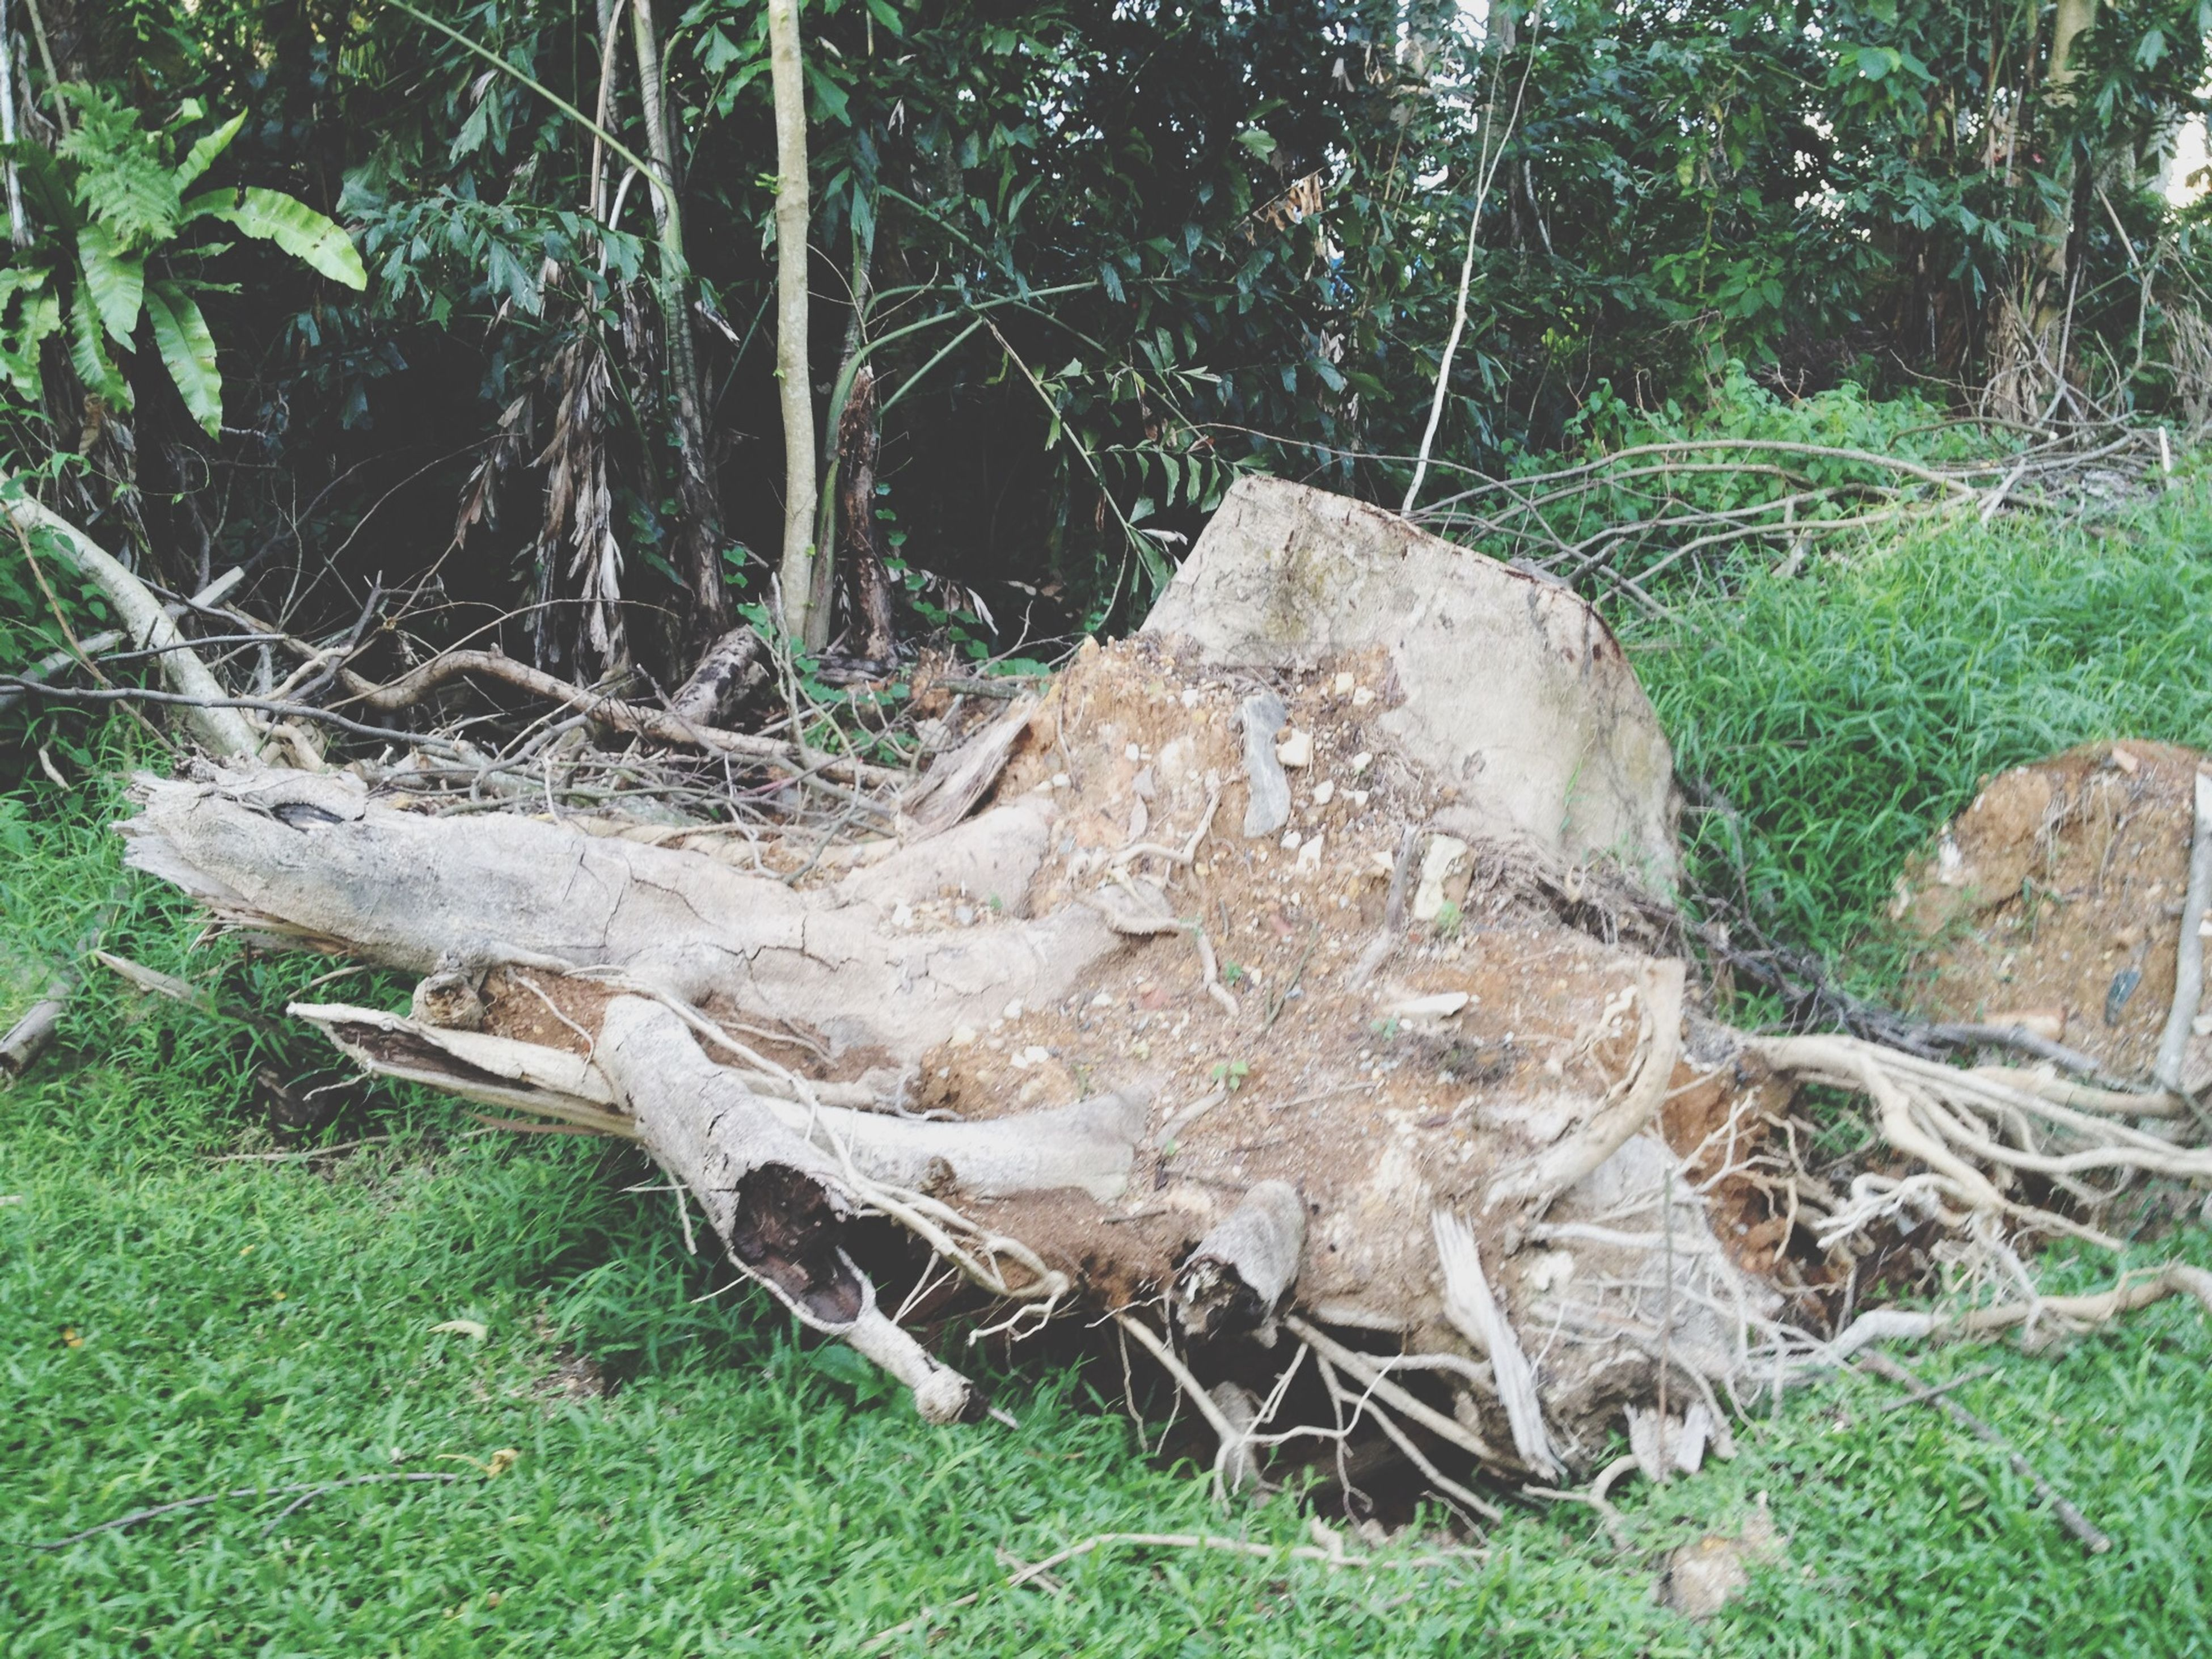 grass, tree, forest, field, nature, tree trunk, growth, log, day, tranquility, grassy, animal themes, plant, outdoors, no people, relaxation, wood - material, green color, wildlife, rock - object